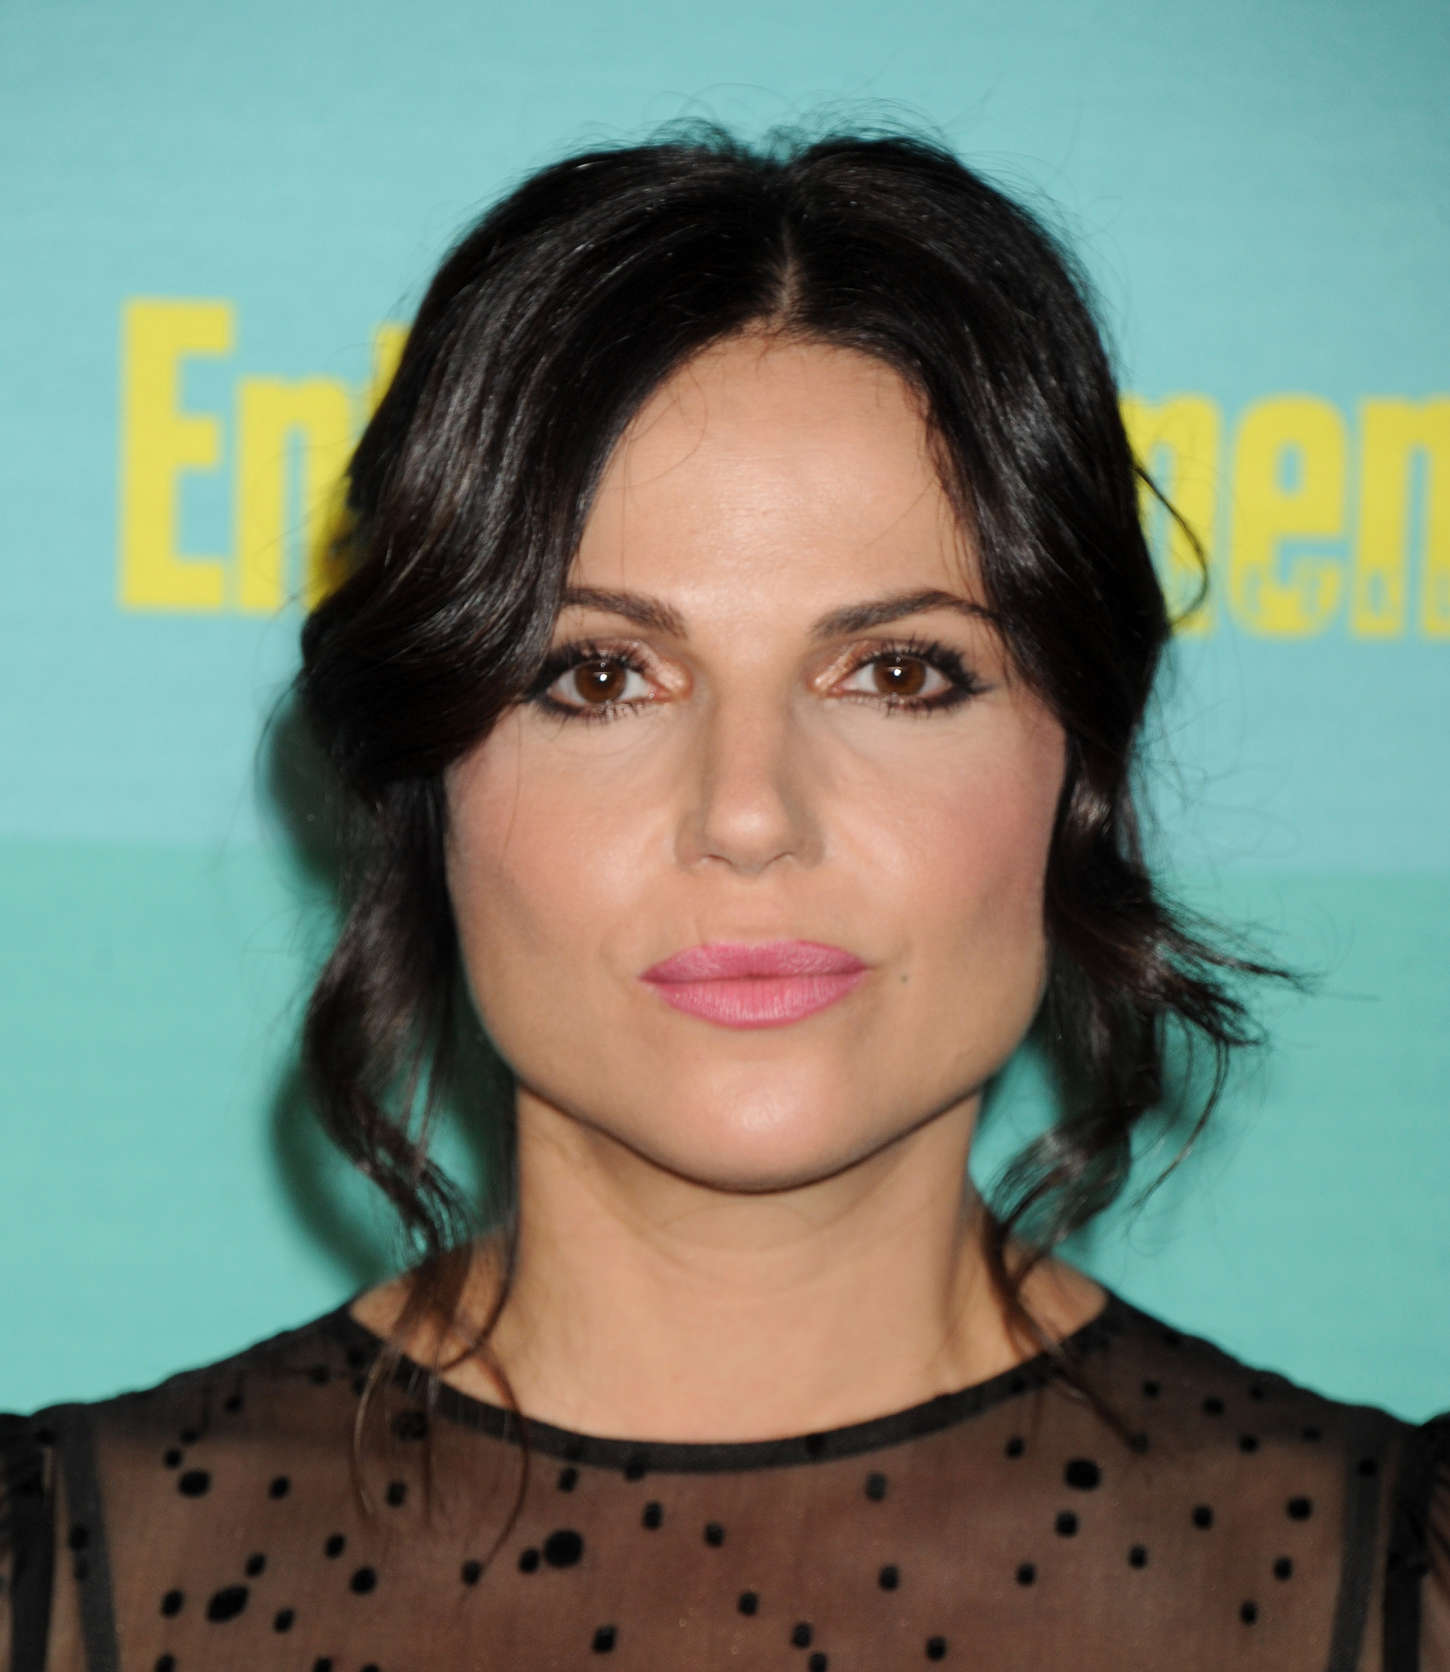 lana parrilla brazillana parrilla gif, lana parrilla photoshoot, lana parrilla wiki, lana parrilla 2017, lana parrilla wallpaper, lana parrilla lost, lana parrilla vk, lana parrilla france, lana parrilla brazil, lana parrilla tumblr gif, lana parrilla wikipedia, lana parrilla wedding, lana parrilla art, lana parrilla photos, lana parrilla latina, lana parrilla address, lana parrilla screencaps, lana parrilla profile, lana parrilla fansite, lana parrilla red carpet